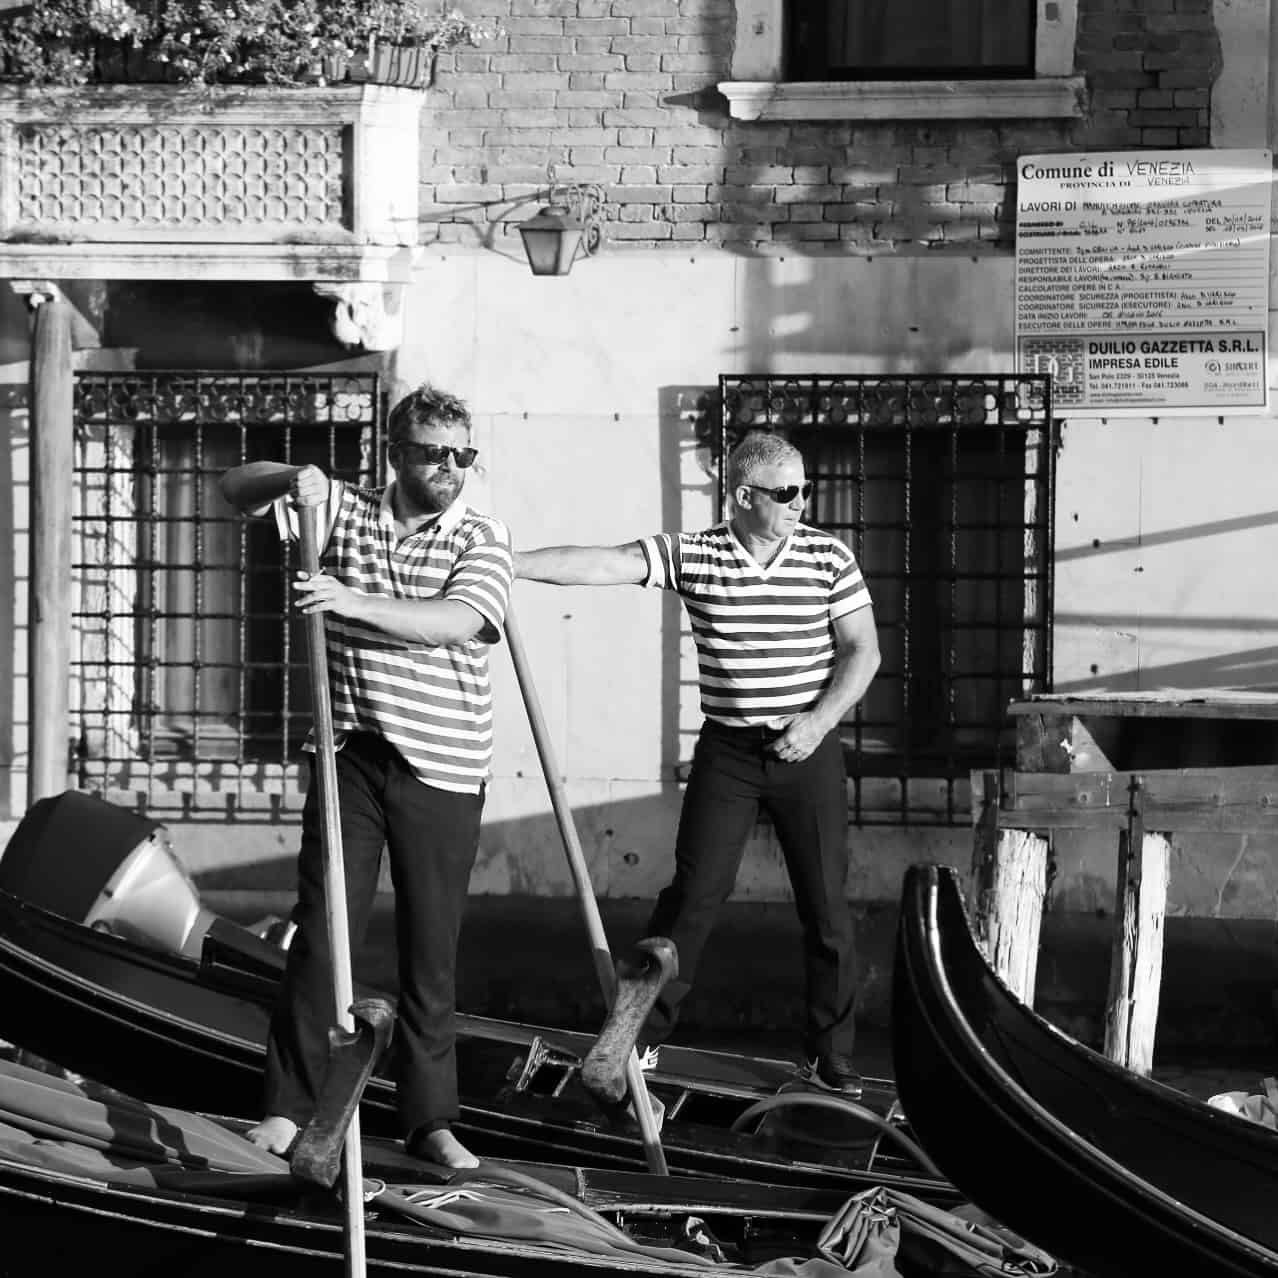 Portraits of Italy: gondoliers in the Grand Canal, Venice